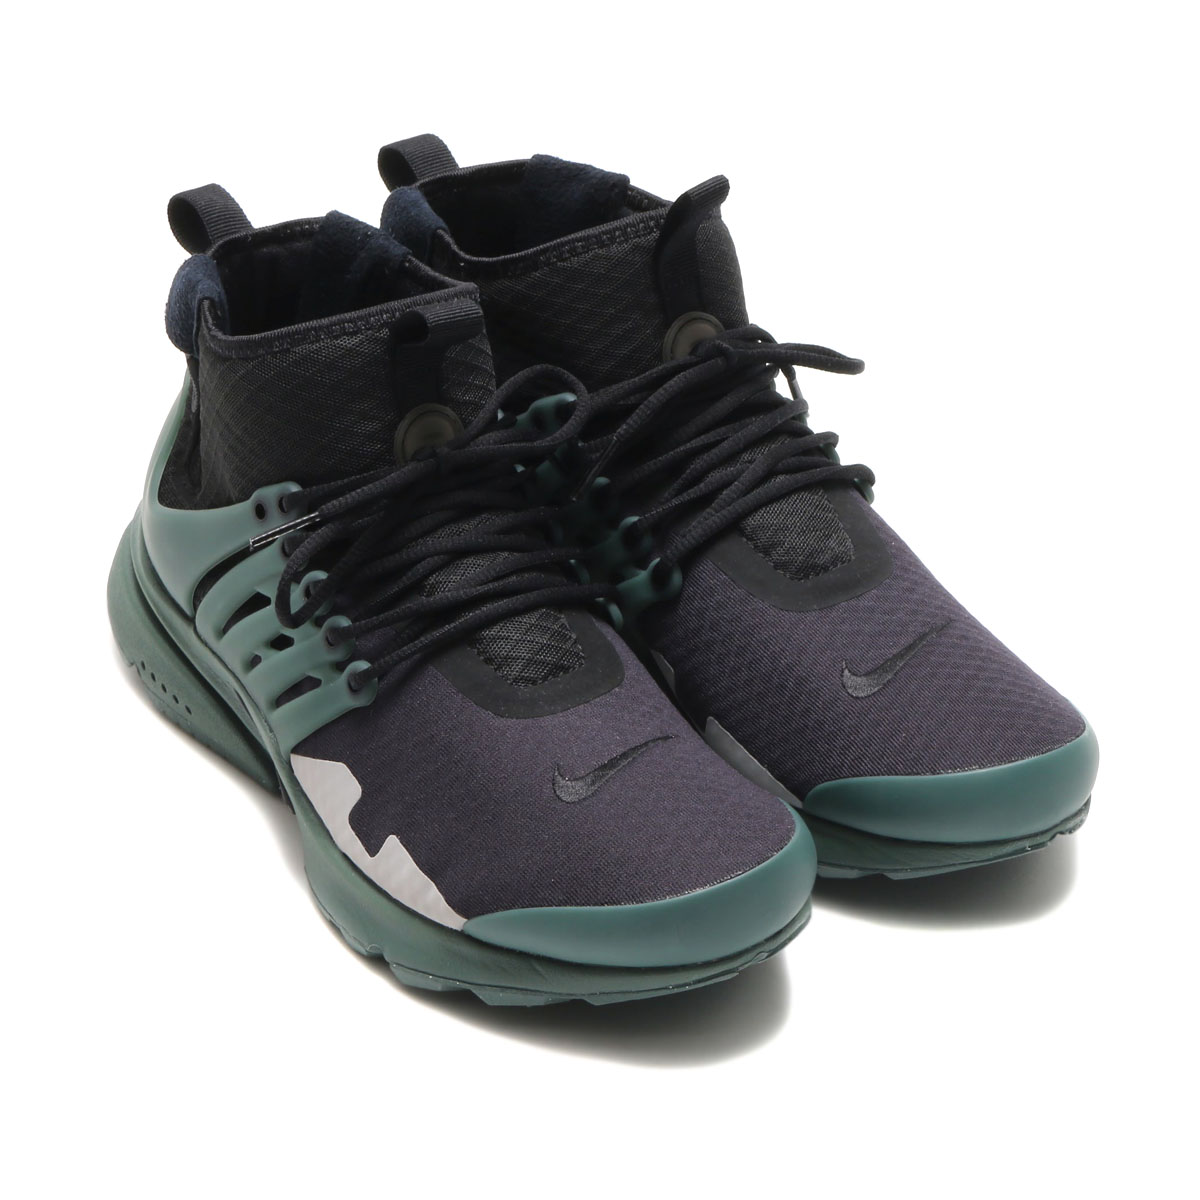 save off 66b40 746e1 It is ♪ NIKE AIR PRESTO MID SP (Kie Ney apr strike mid SP) ...